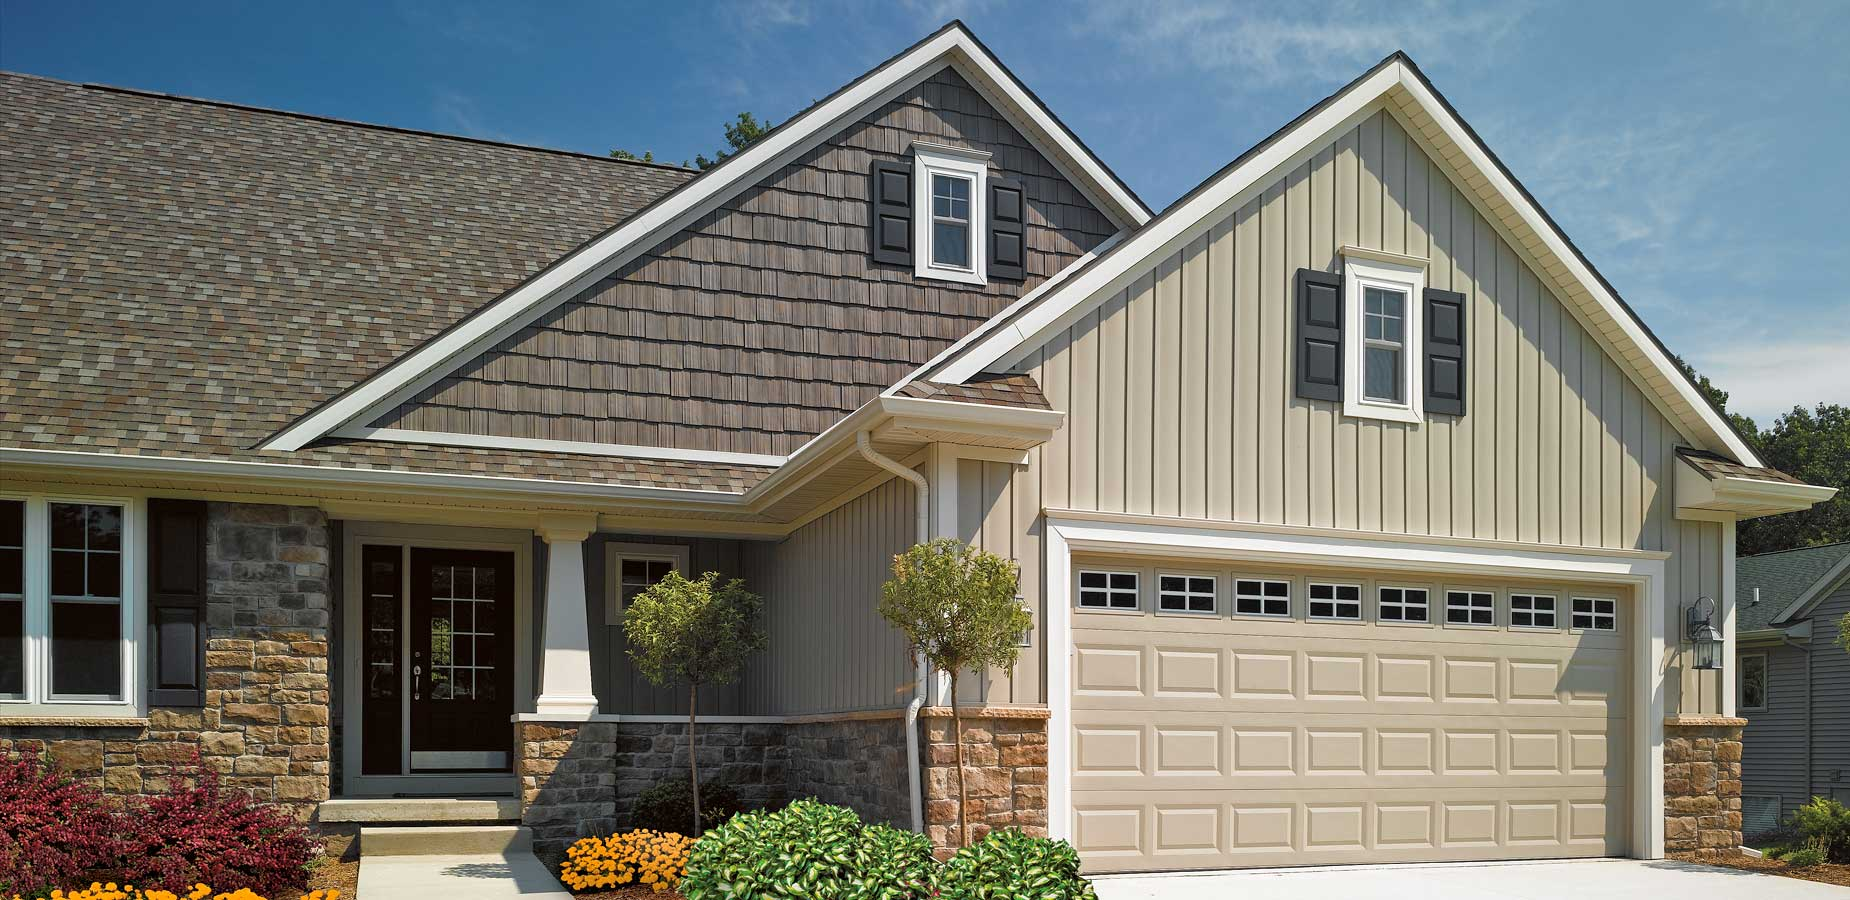 Bell General Contractors - Siding in NJ & PA